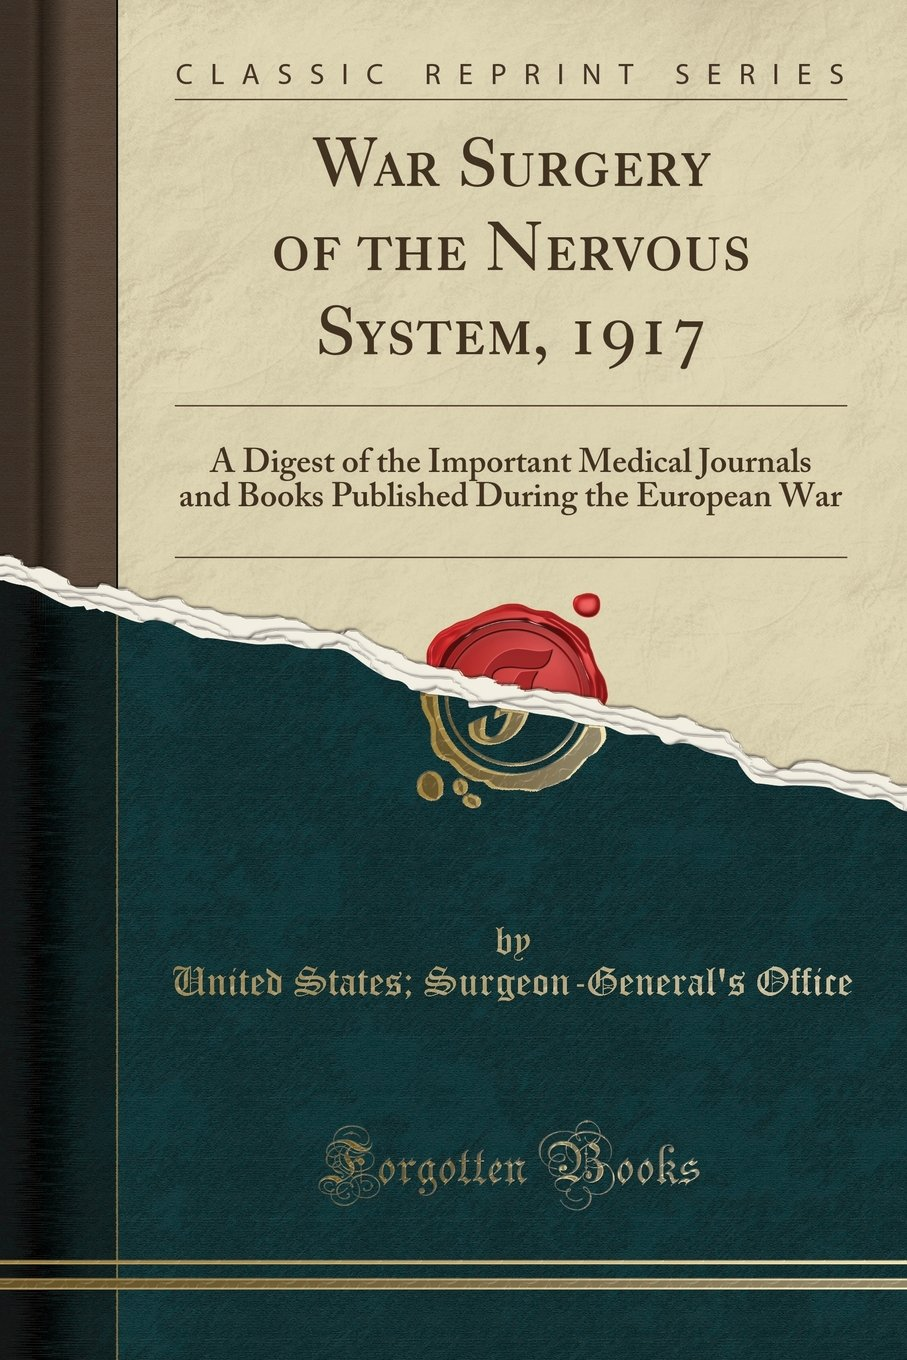 War Surgery of the Nervous System, 1917: A Digest of the Important Medical Journals and Books Published During the European War (Classic Reprint) pdf epub